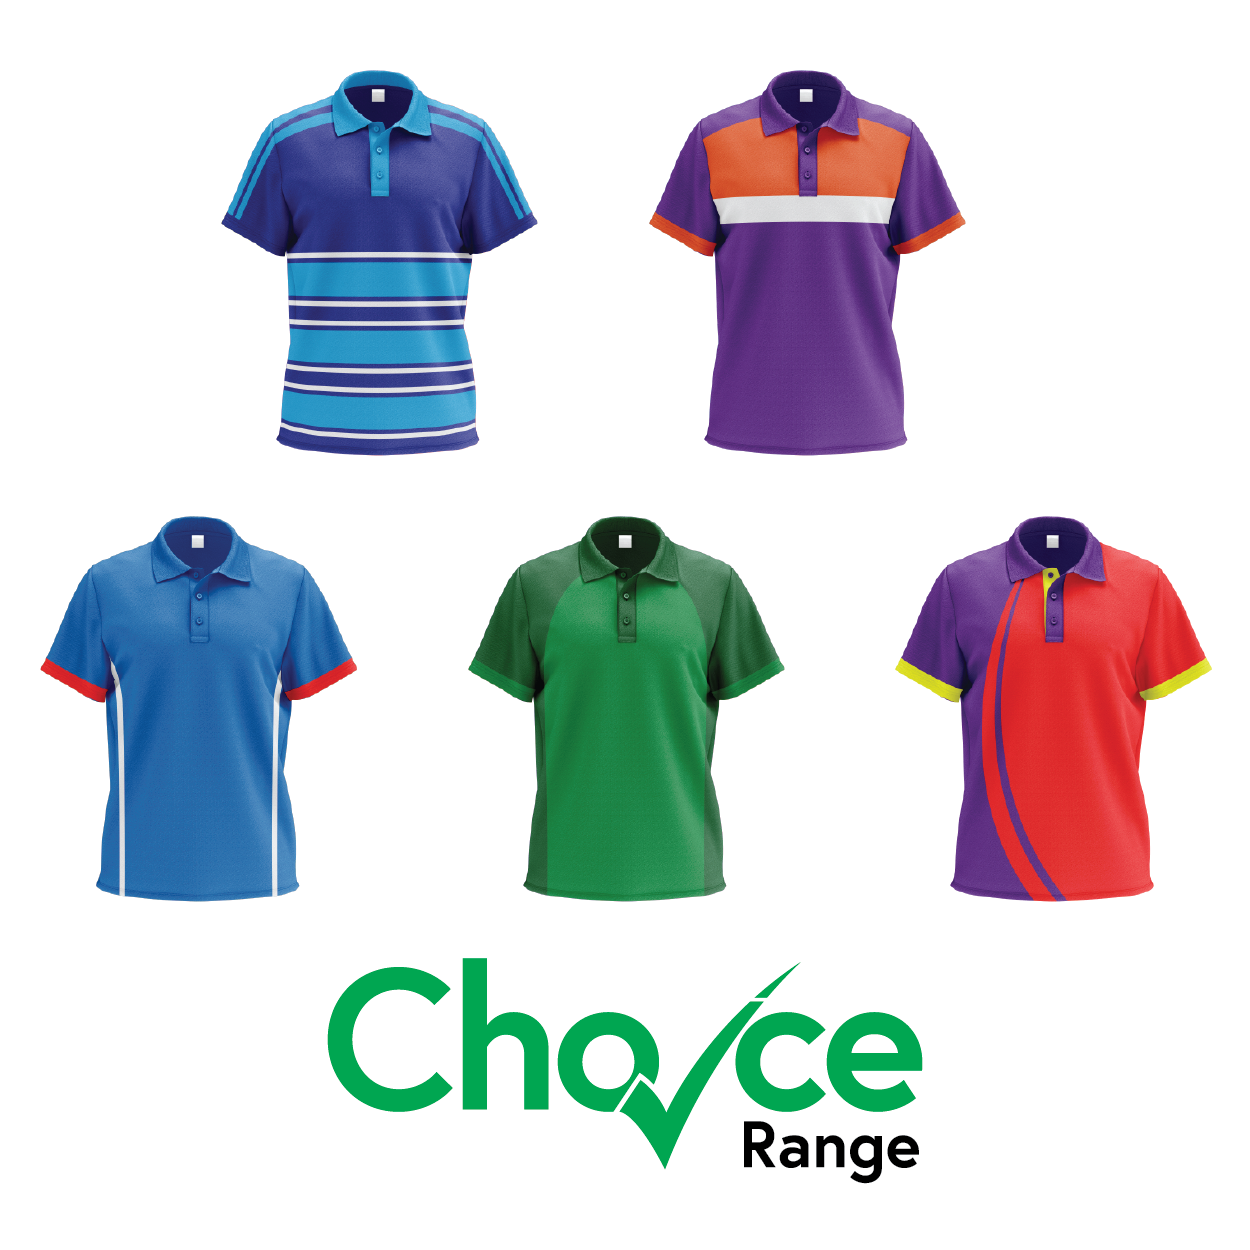 Choice Range Polo Shirts